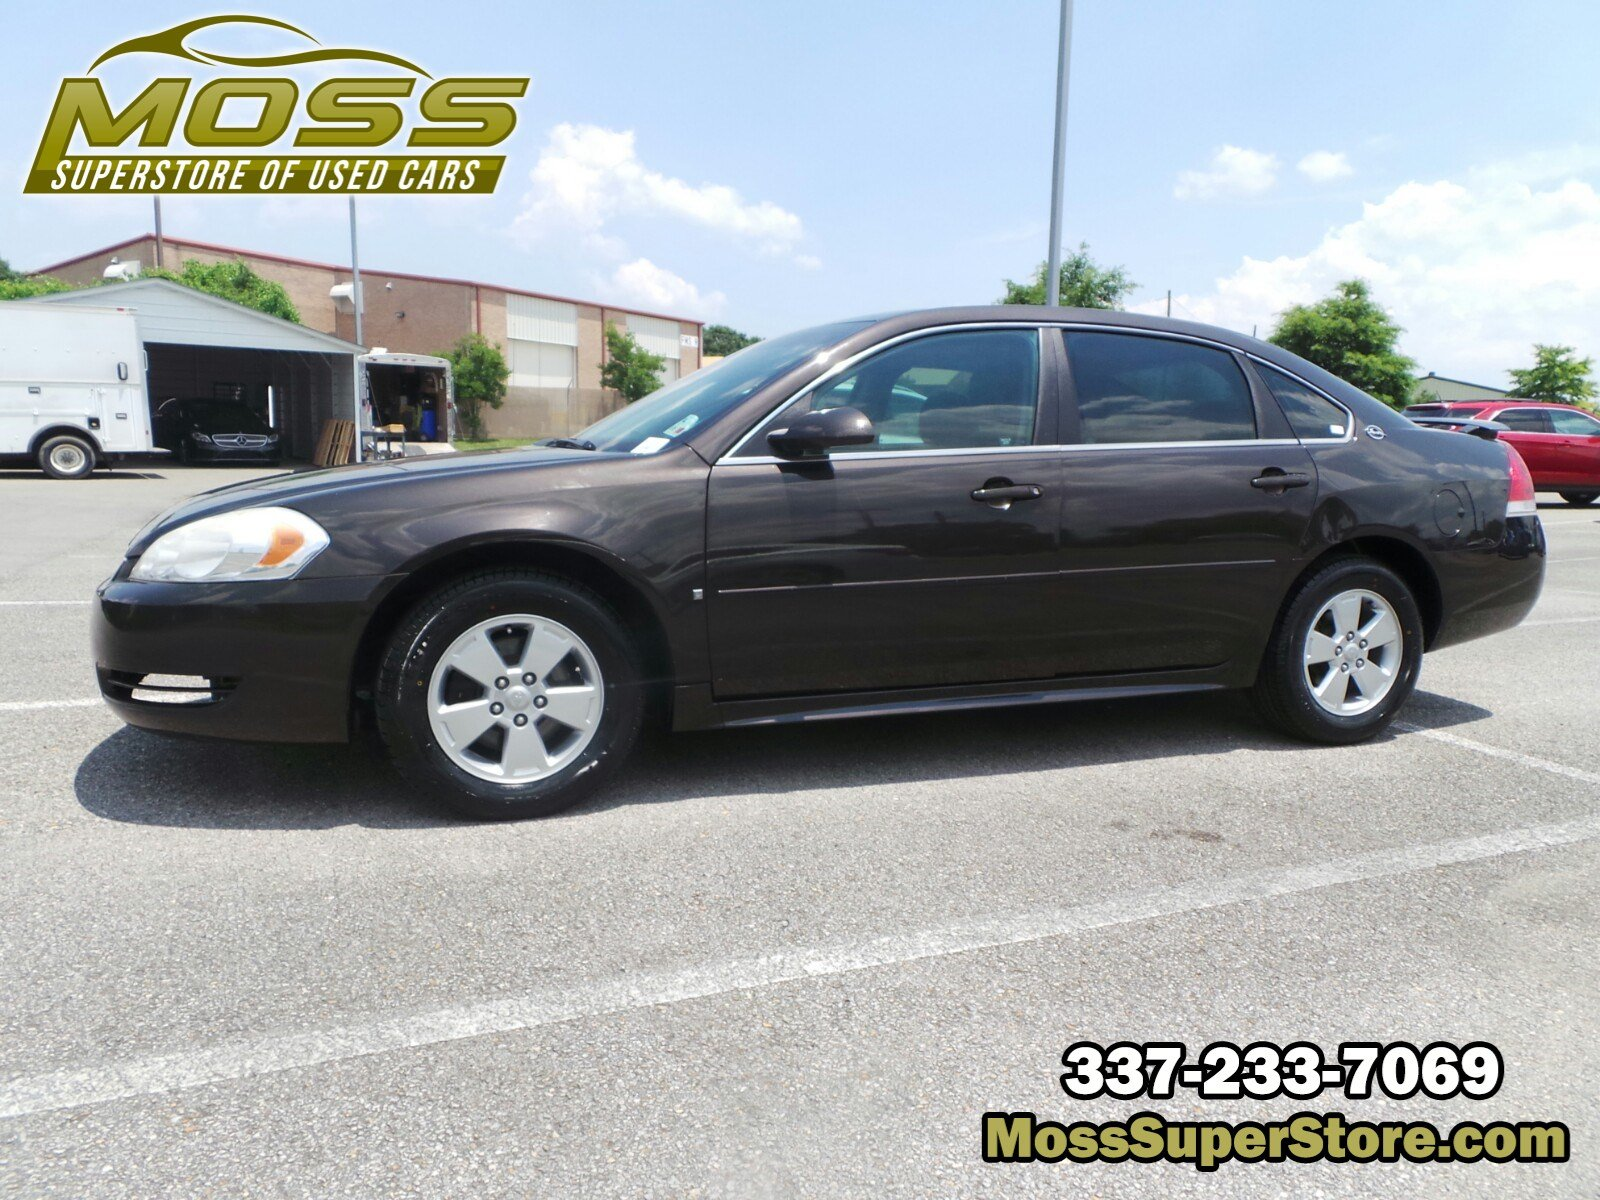 Pre-Owned 2009 Chevrolet Impala 3.5L LT